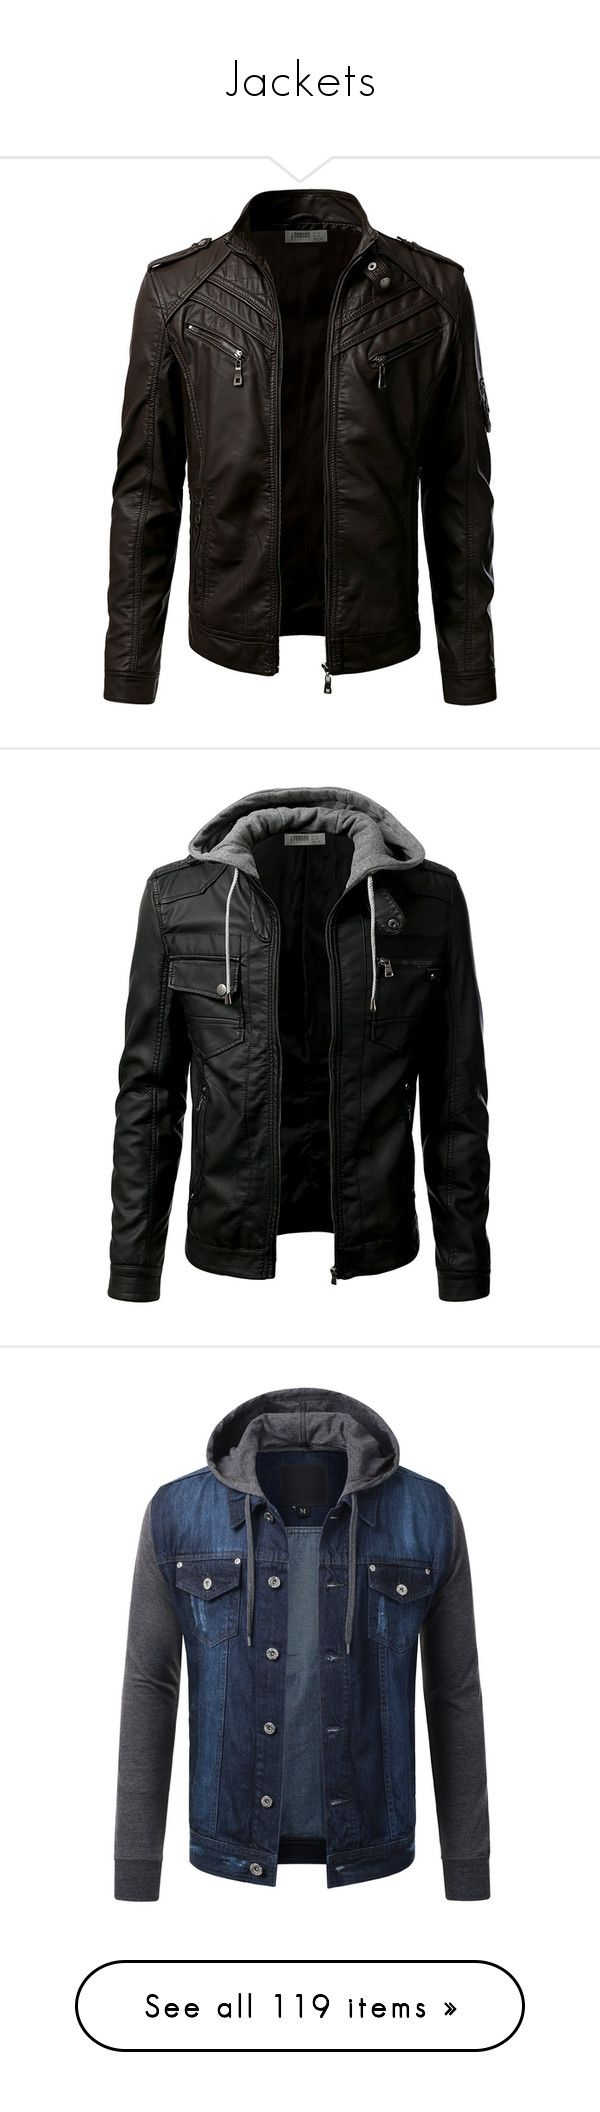 """""""Jackets"""" by curiousgamer ❤ liked on Polyvore featuring men's fashion, men's clothing, men's outerwear, men's jackets, mens blouson jacket, mens flight jacket, mens pleather jacket, mens bomber jacket, mens jackets and mens hooded denim jacket"""